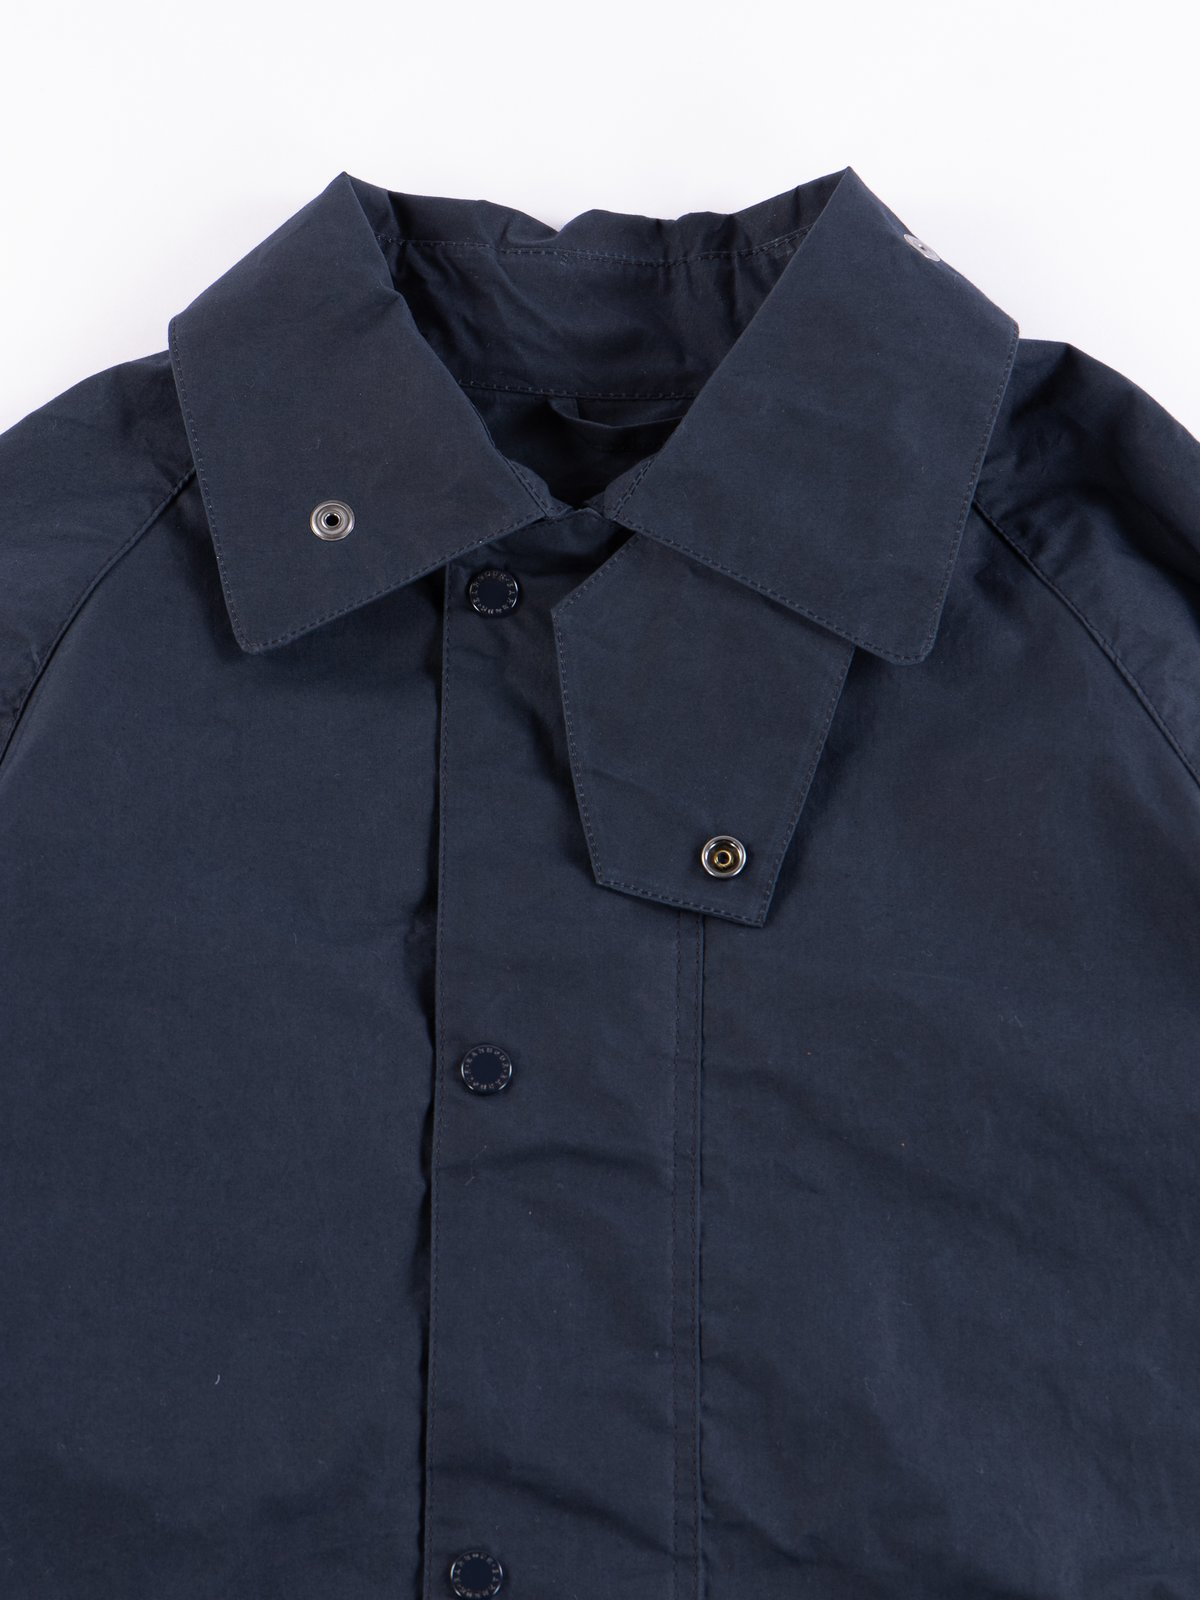 Navy South Overcoat - Image 3